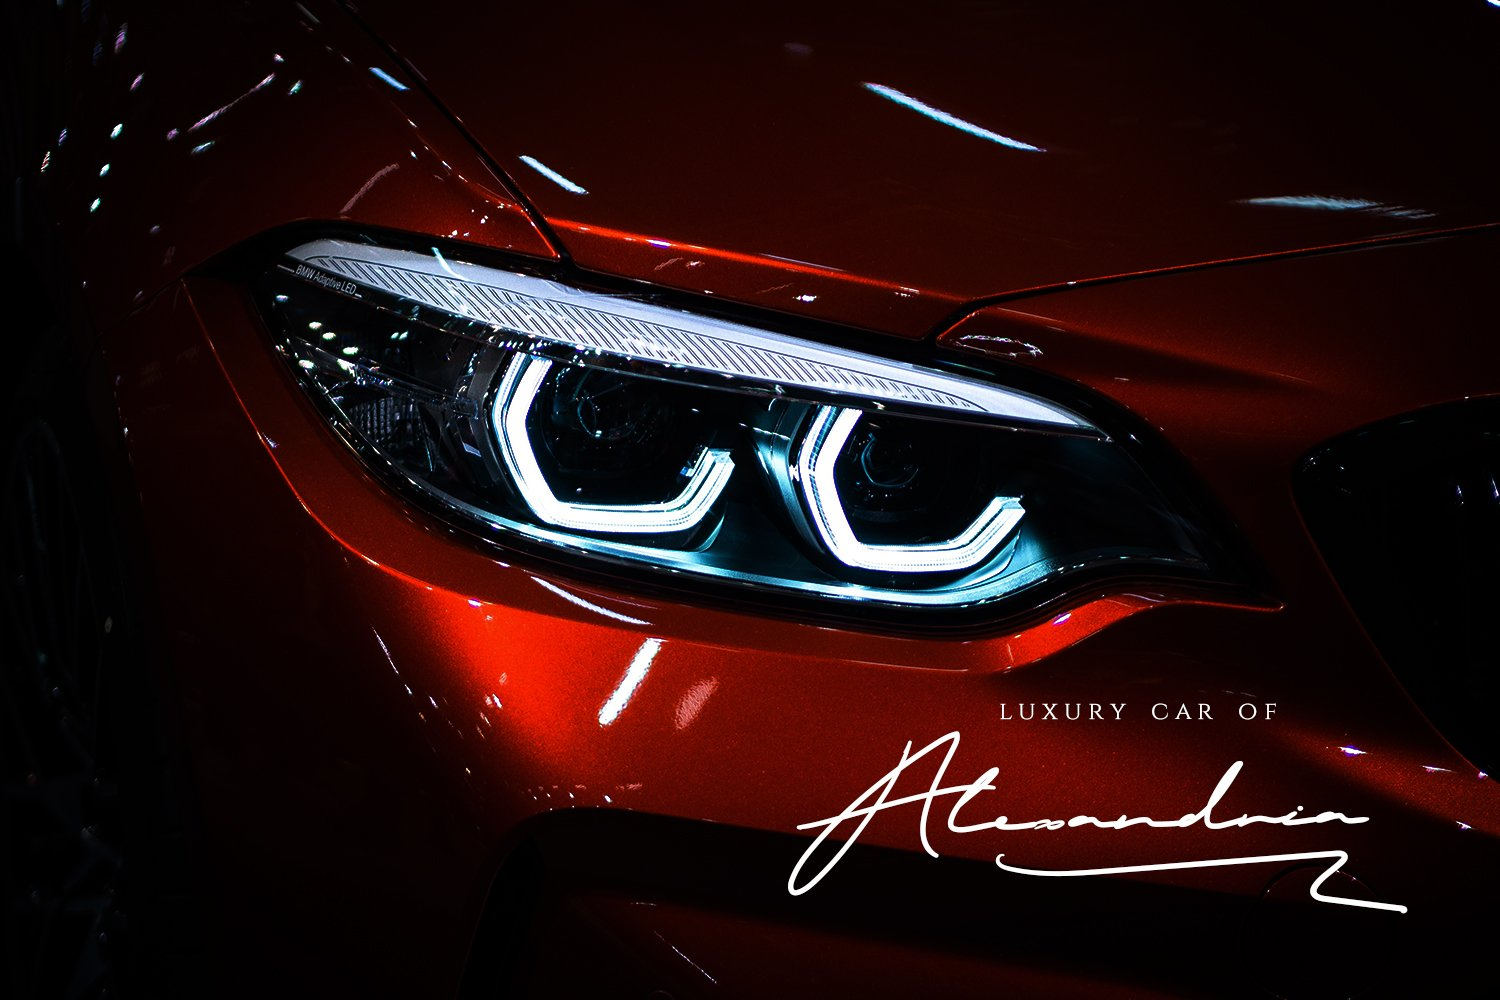 Luxury cars are worthy of this font.